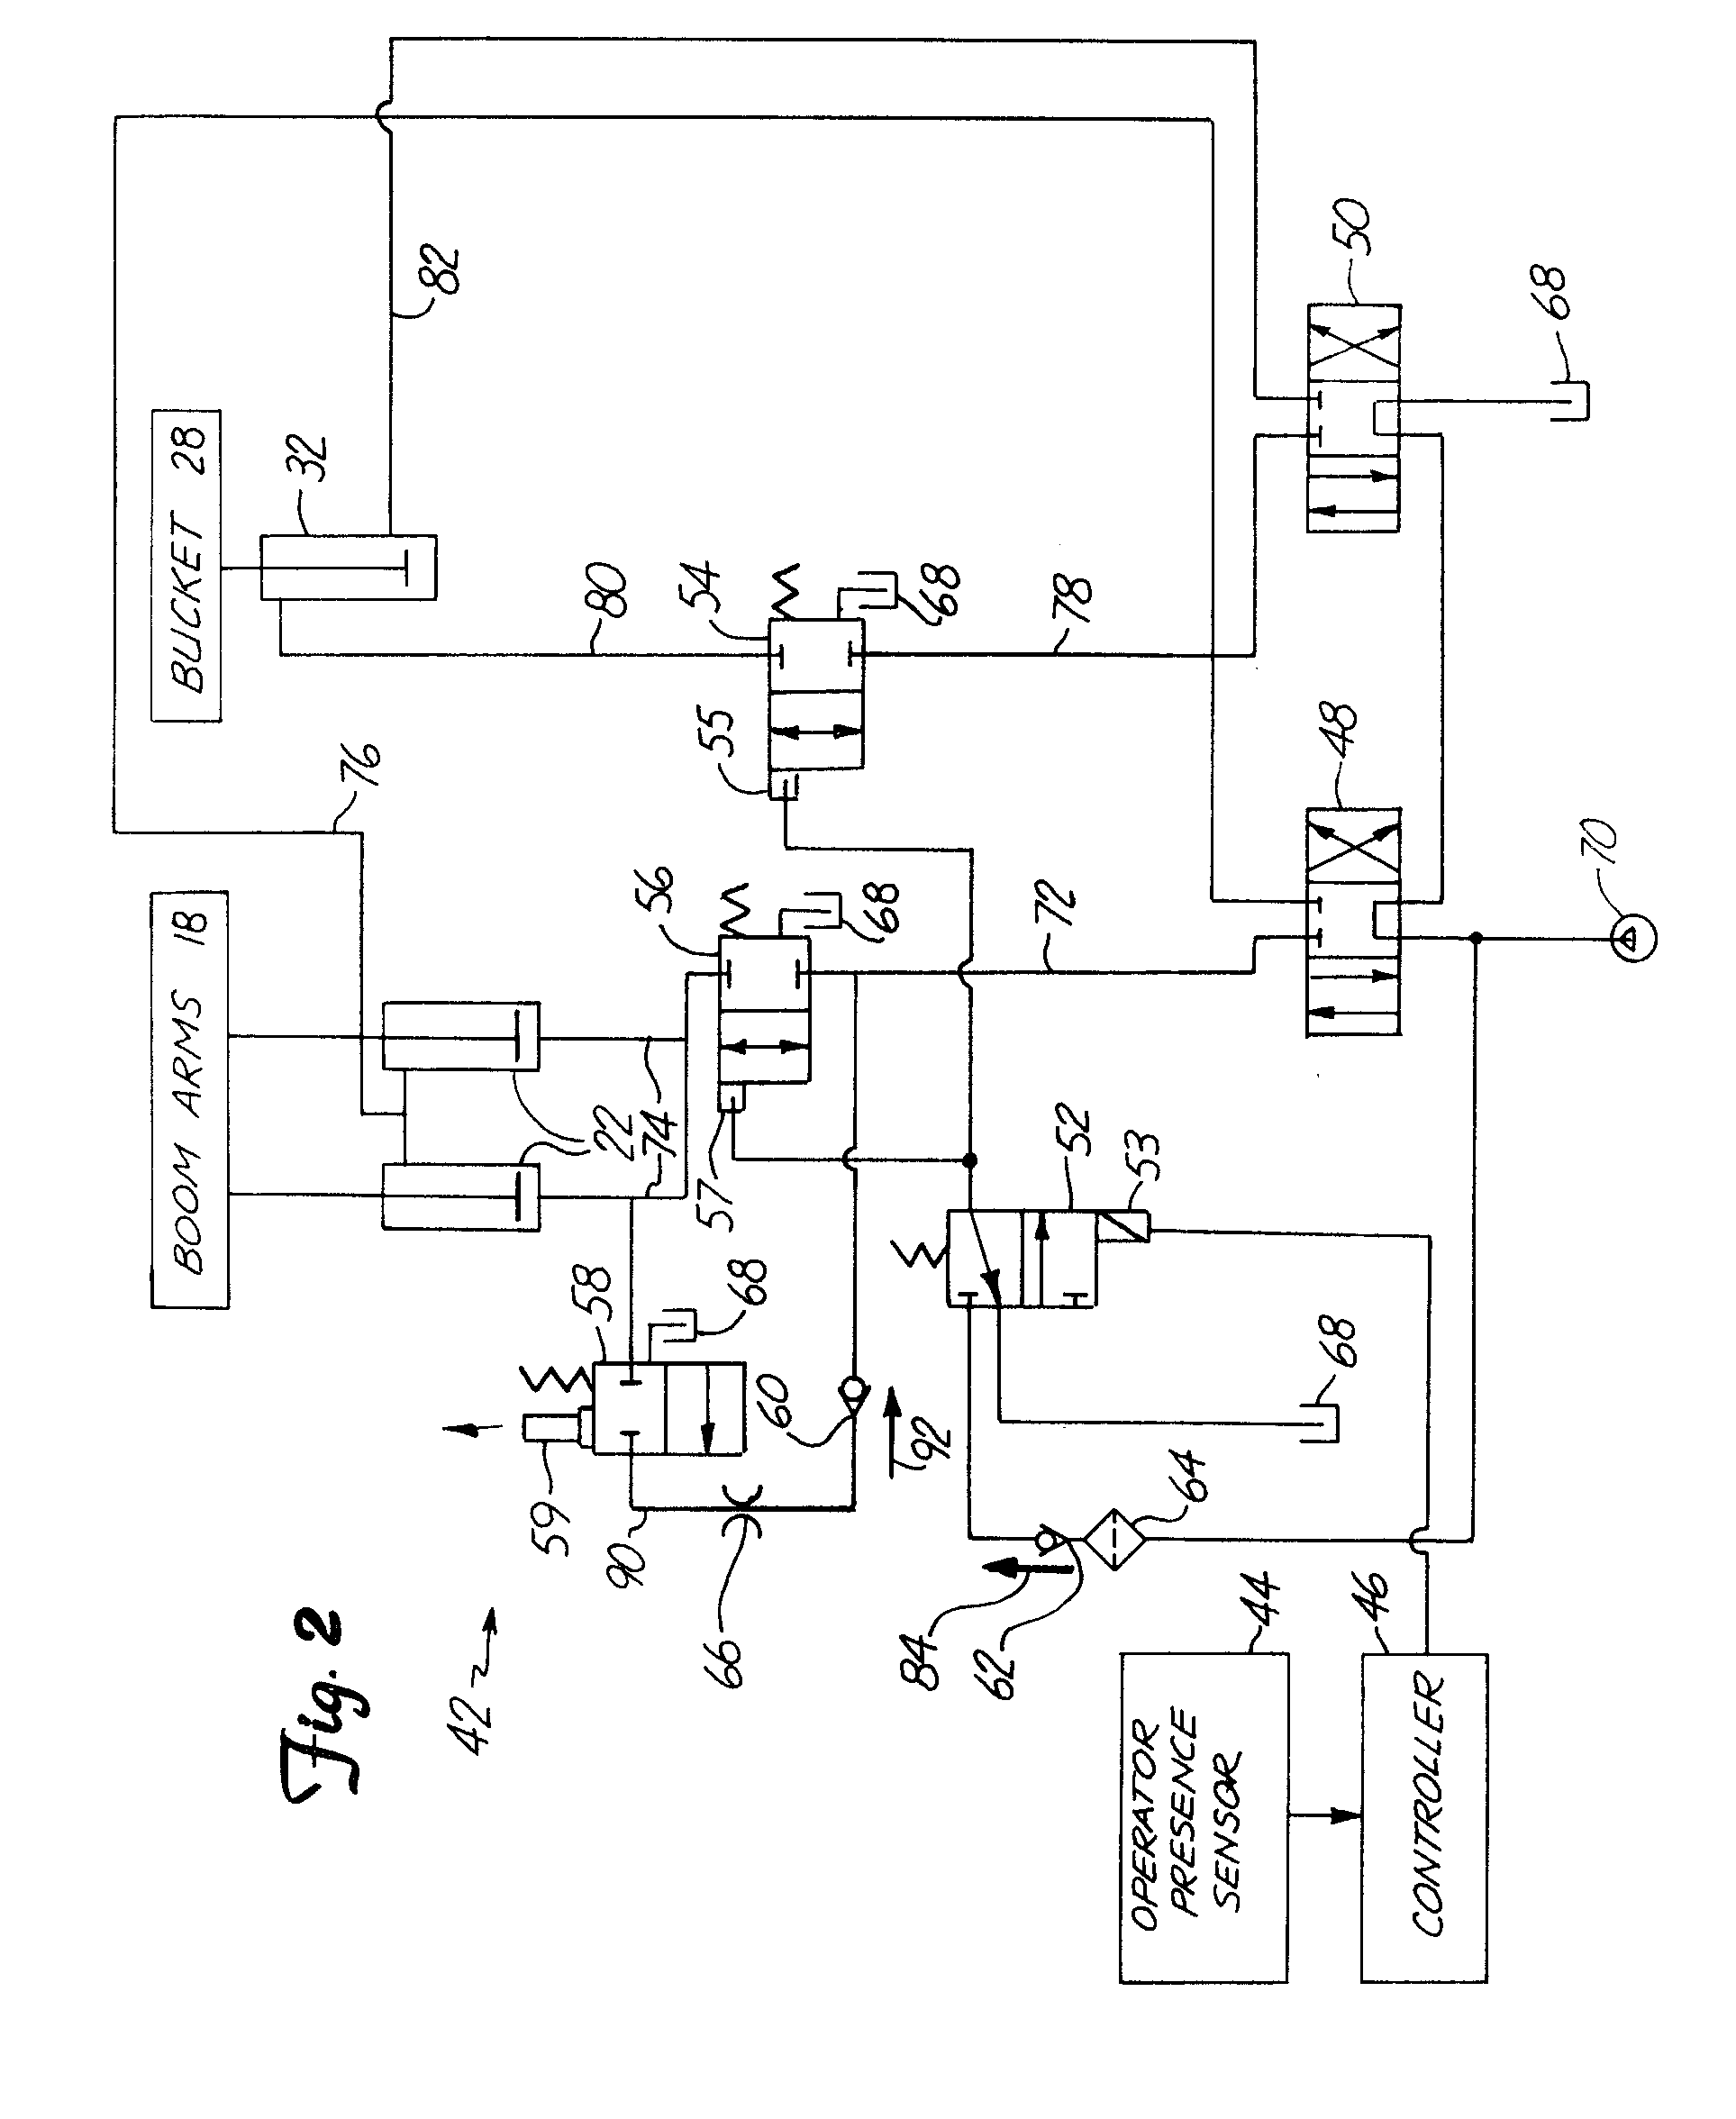 mustang 2054 skid steer wiring diagram - wiring diagram ... mustang skid steer wiring diagrams 1982